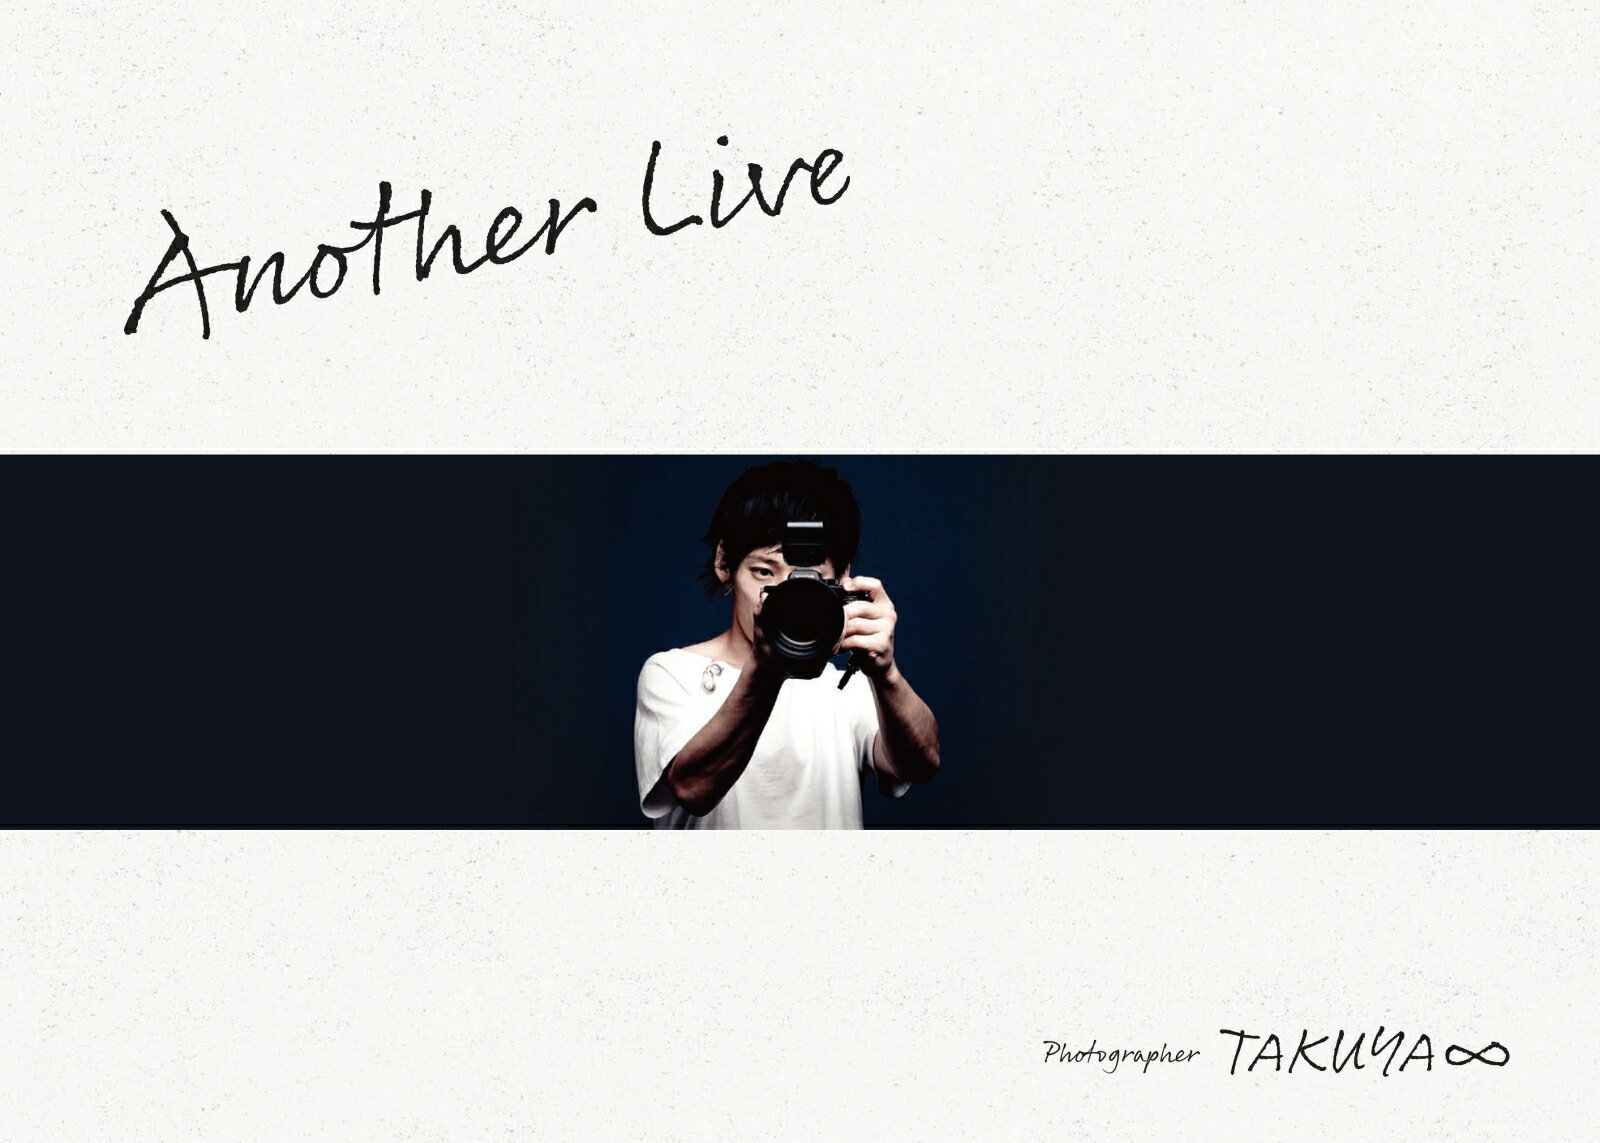 Another Live画像